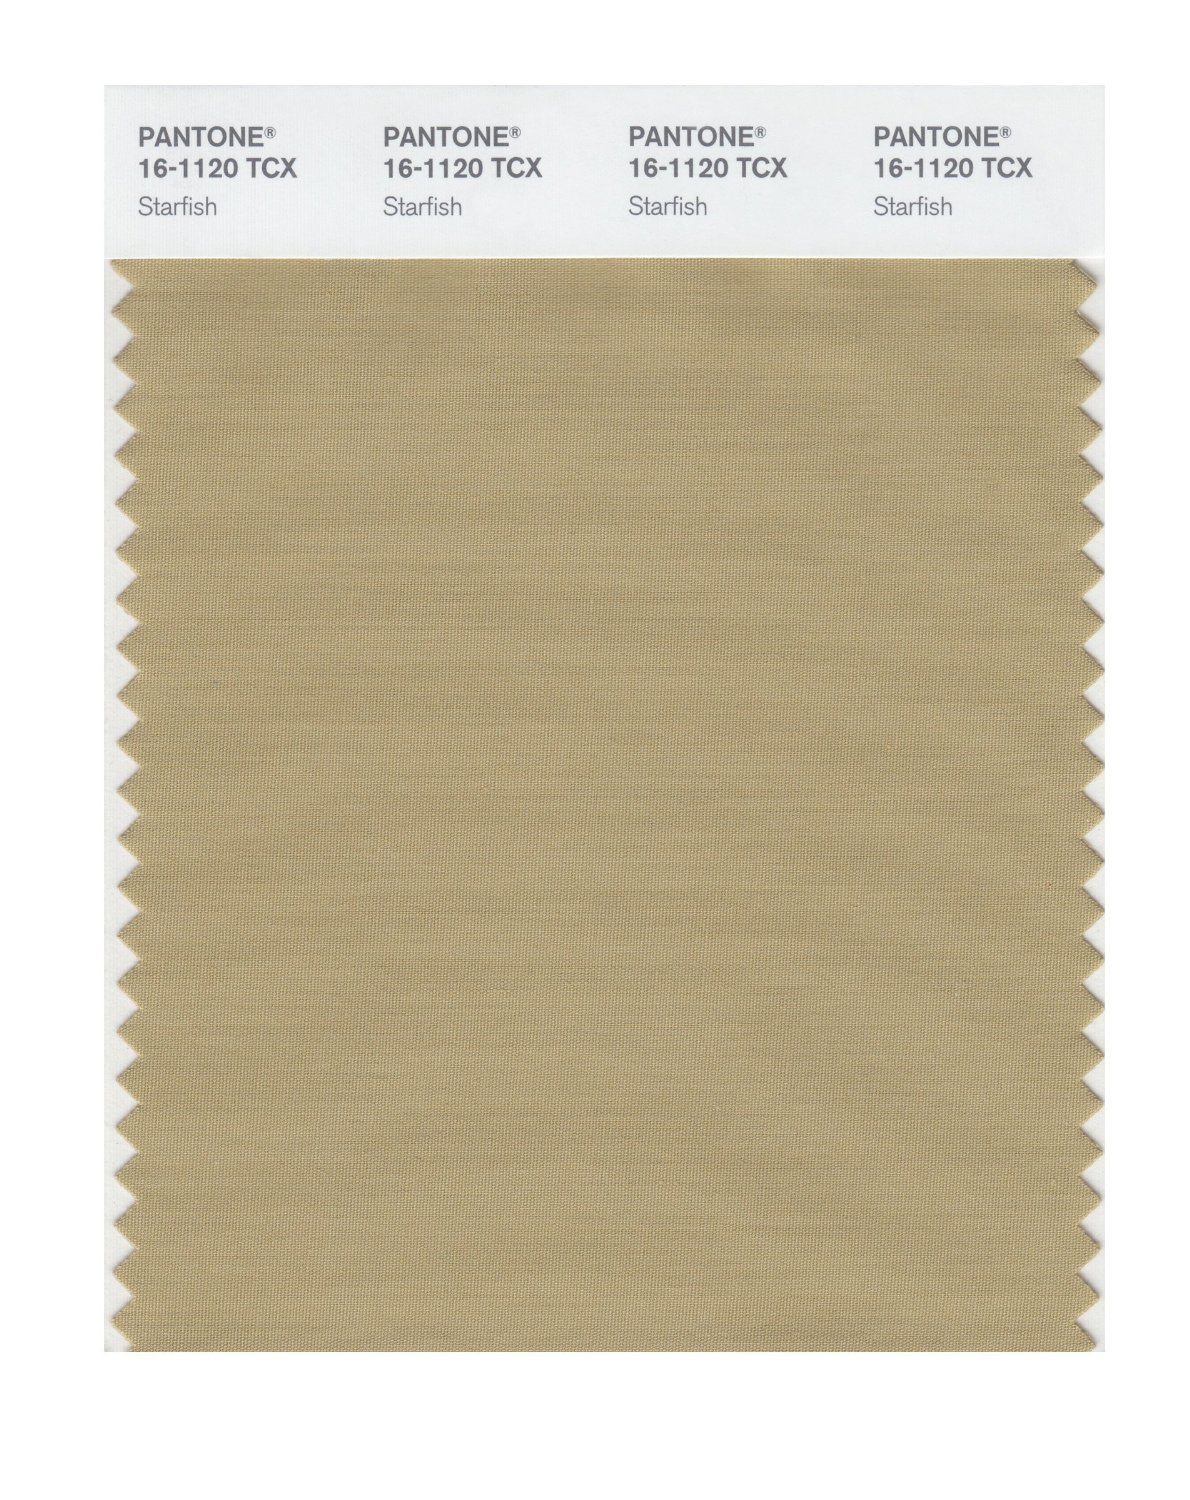 Pantone Smart Swatch 16-1120 Starfish